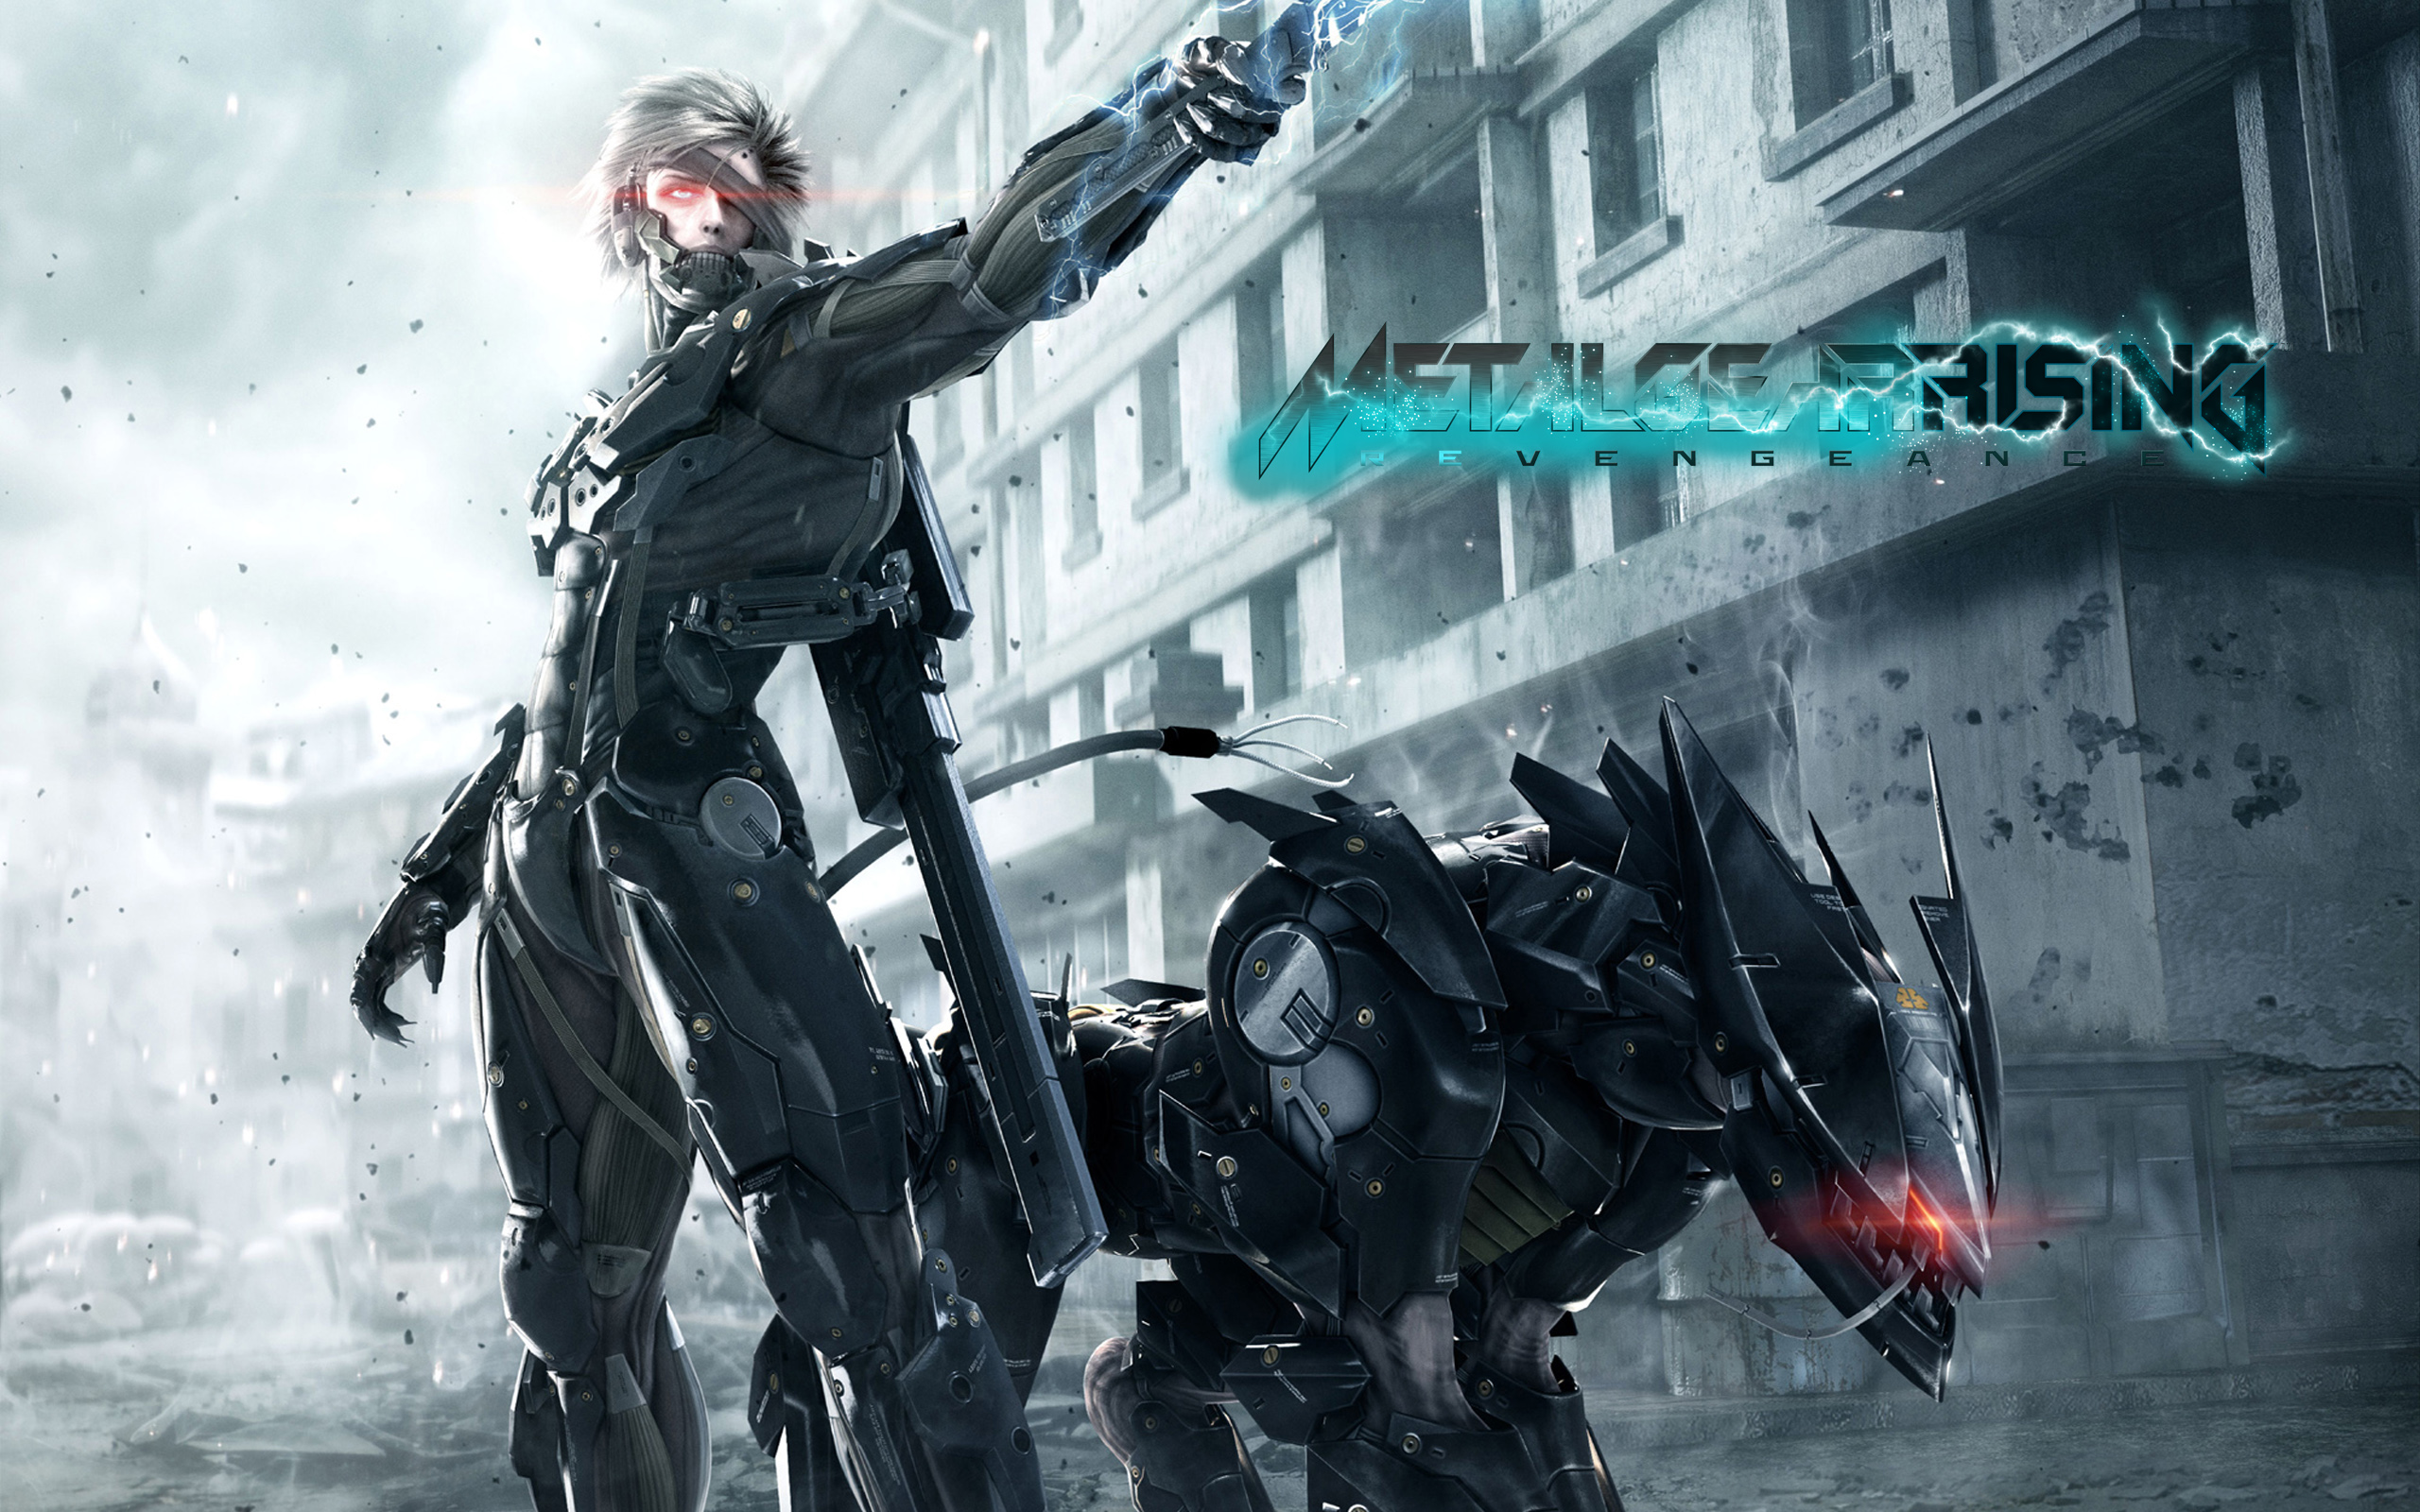 Metal gear rising revengeance 3 wallpapers wallpapers hd metal gear rising revengeance 3 voltagebd Image collections